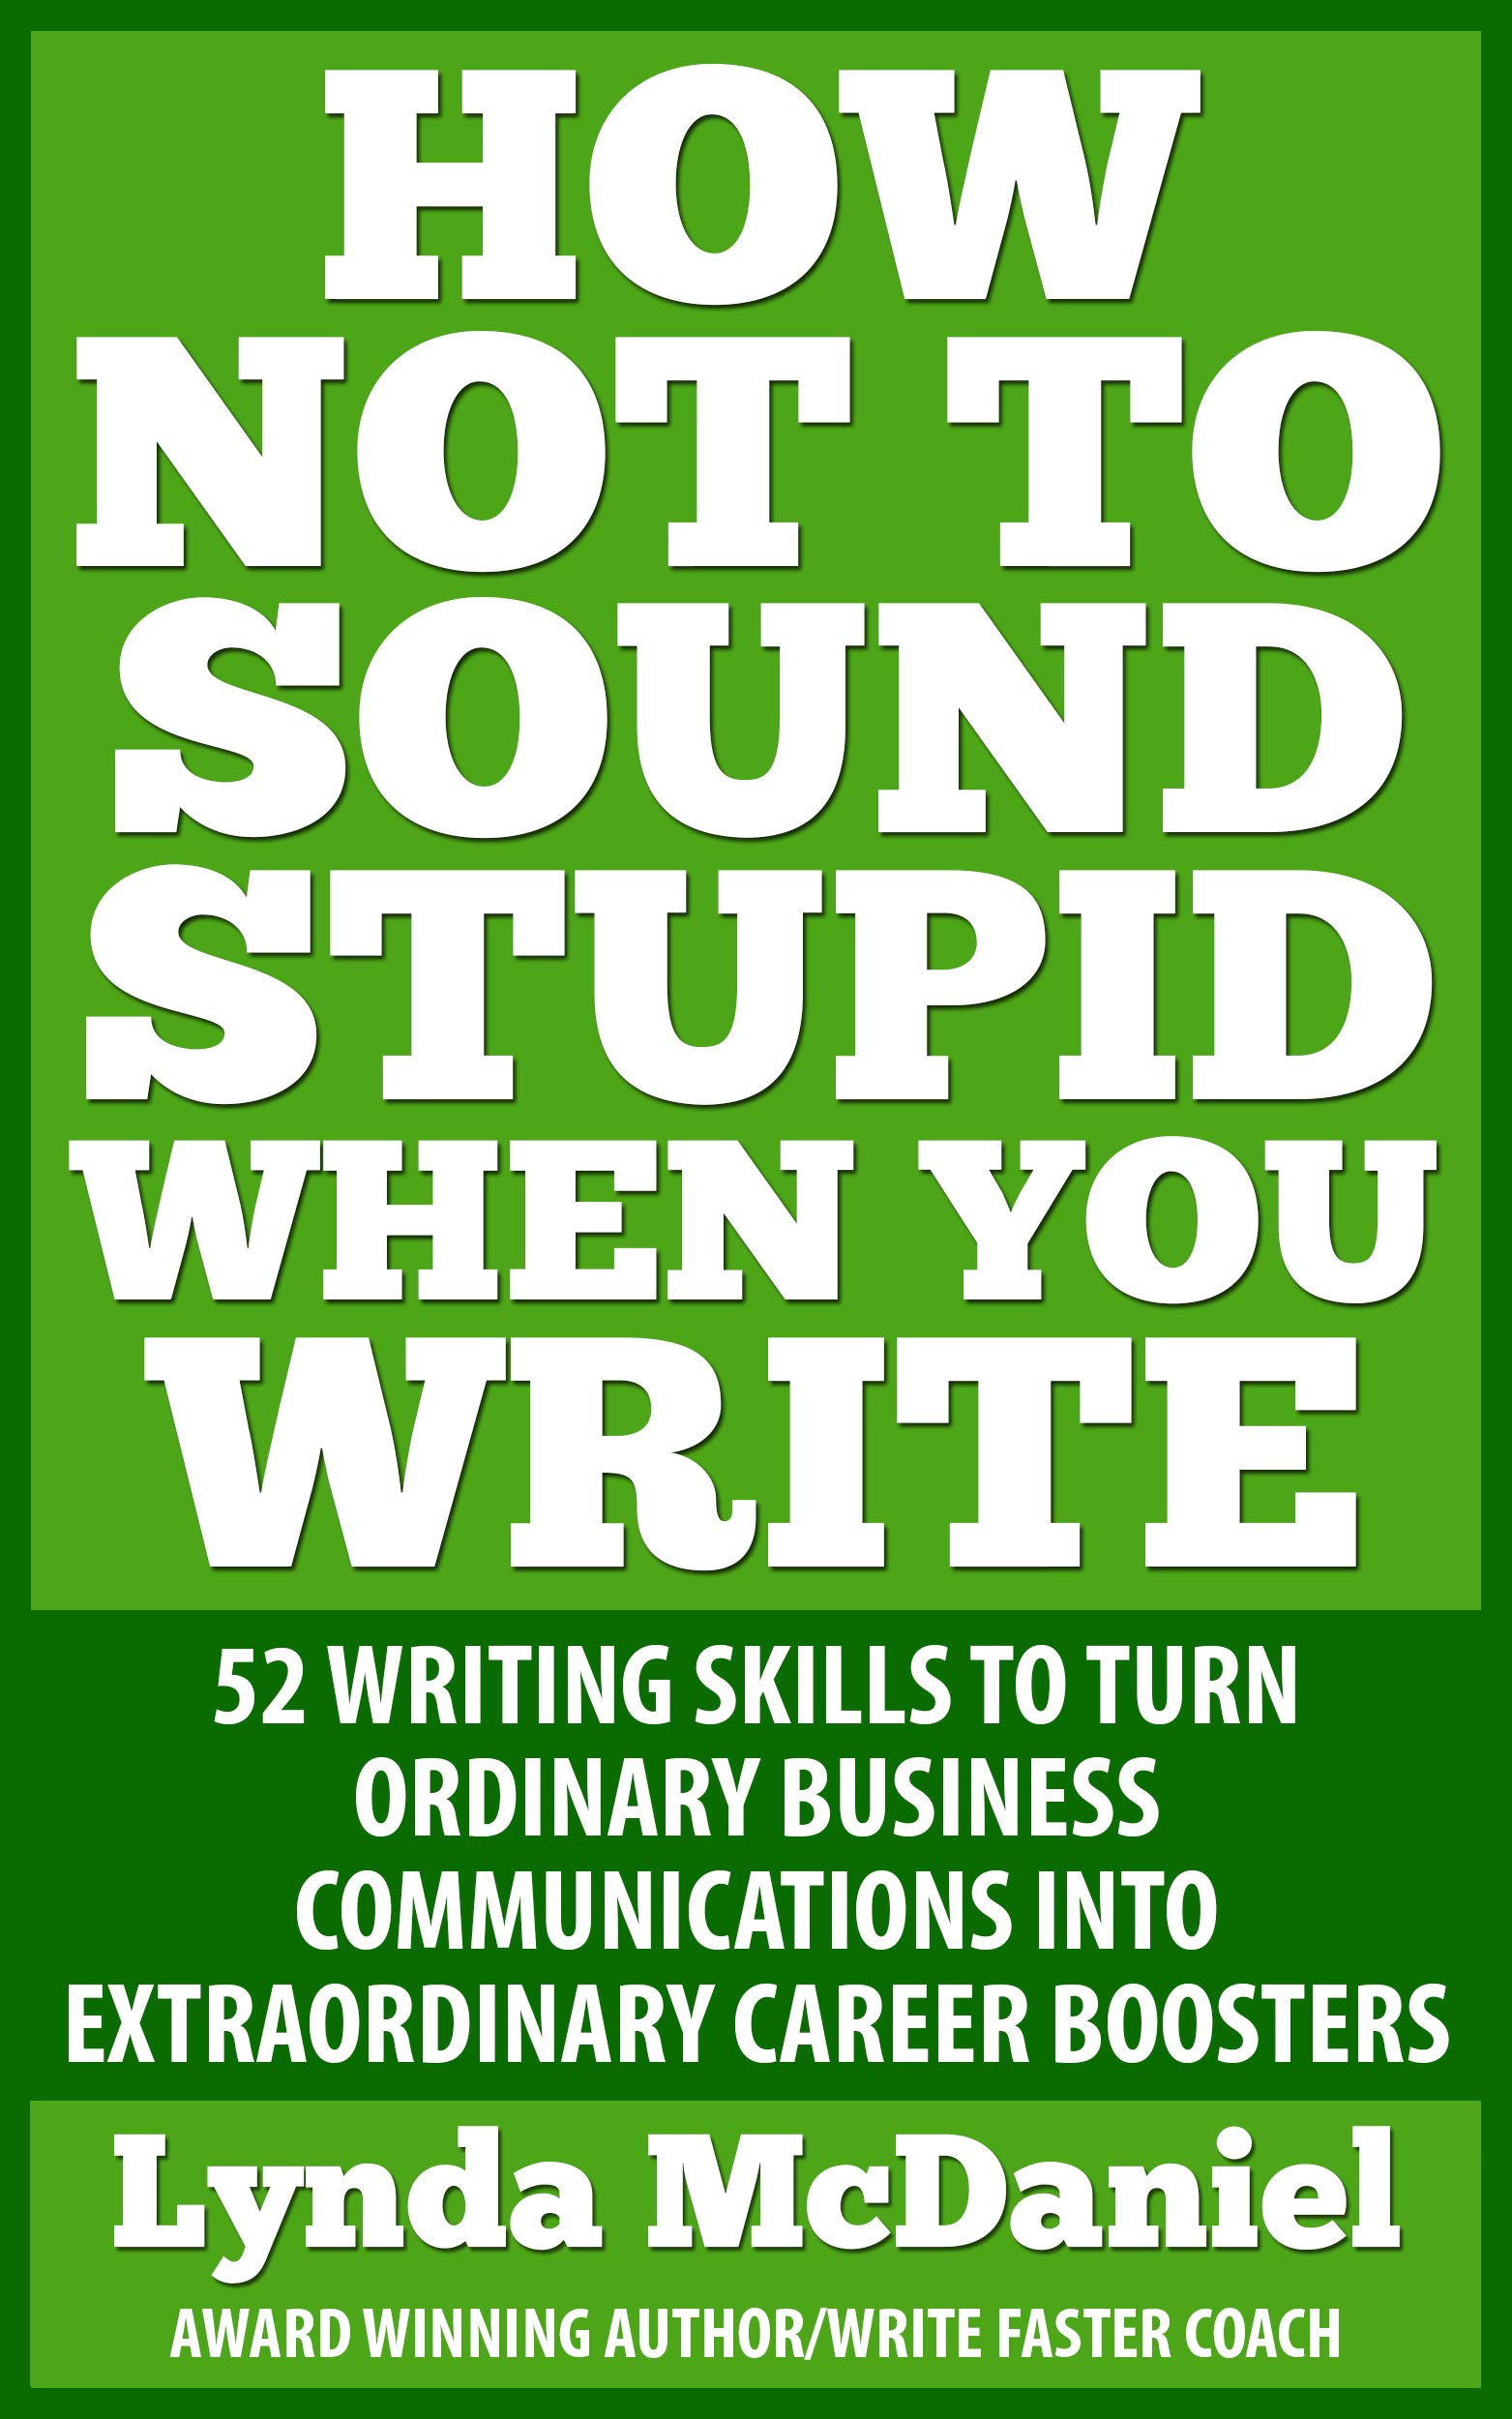 How Not to Sound Stupid When You Write: 52 Writing Techniques to Kick-start Your Writing, Improve Your Communication Skills, and Deliver the Results You Want! (Write Faster Series Book 2)